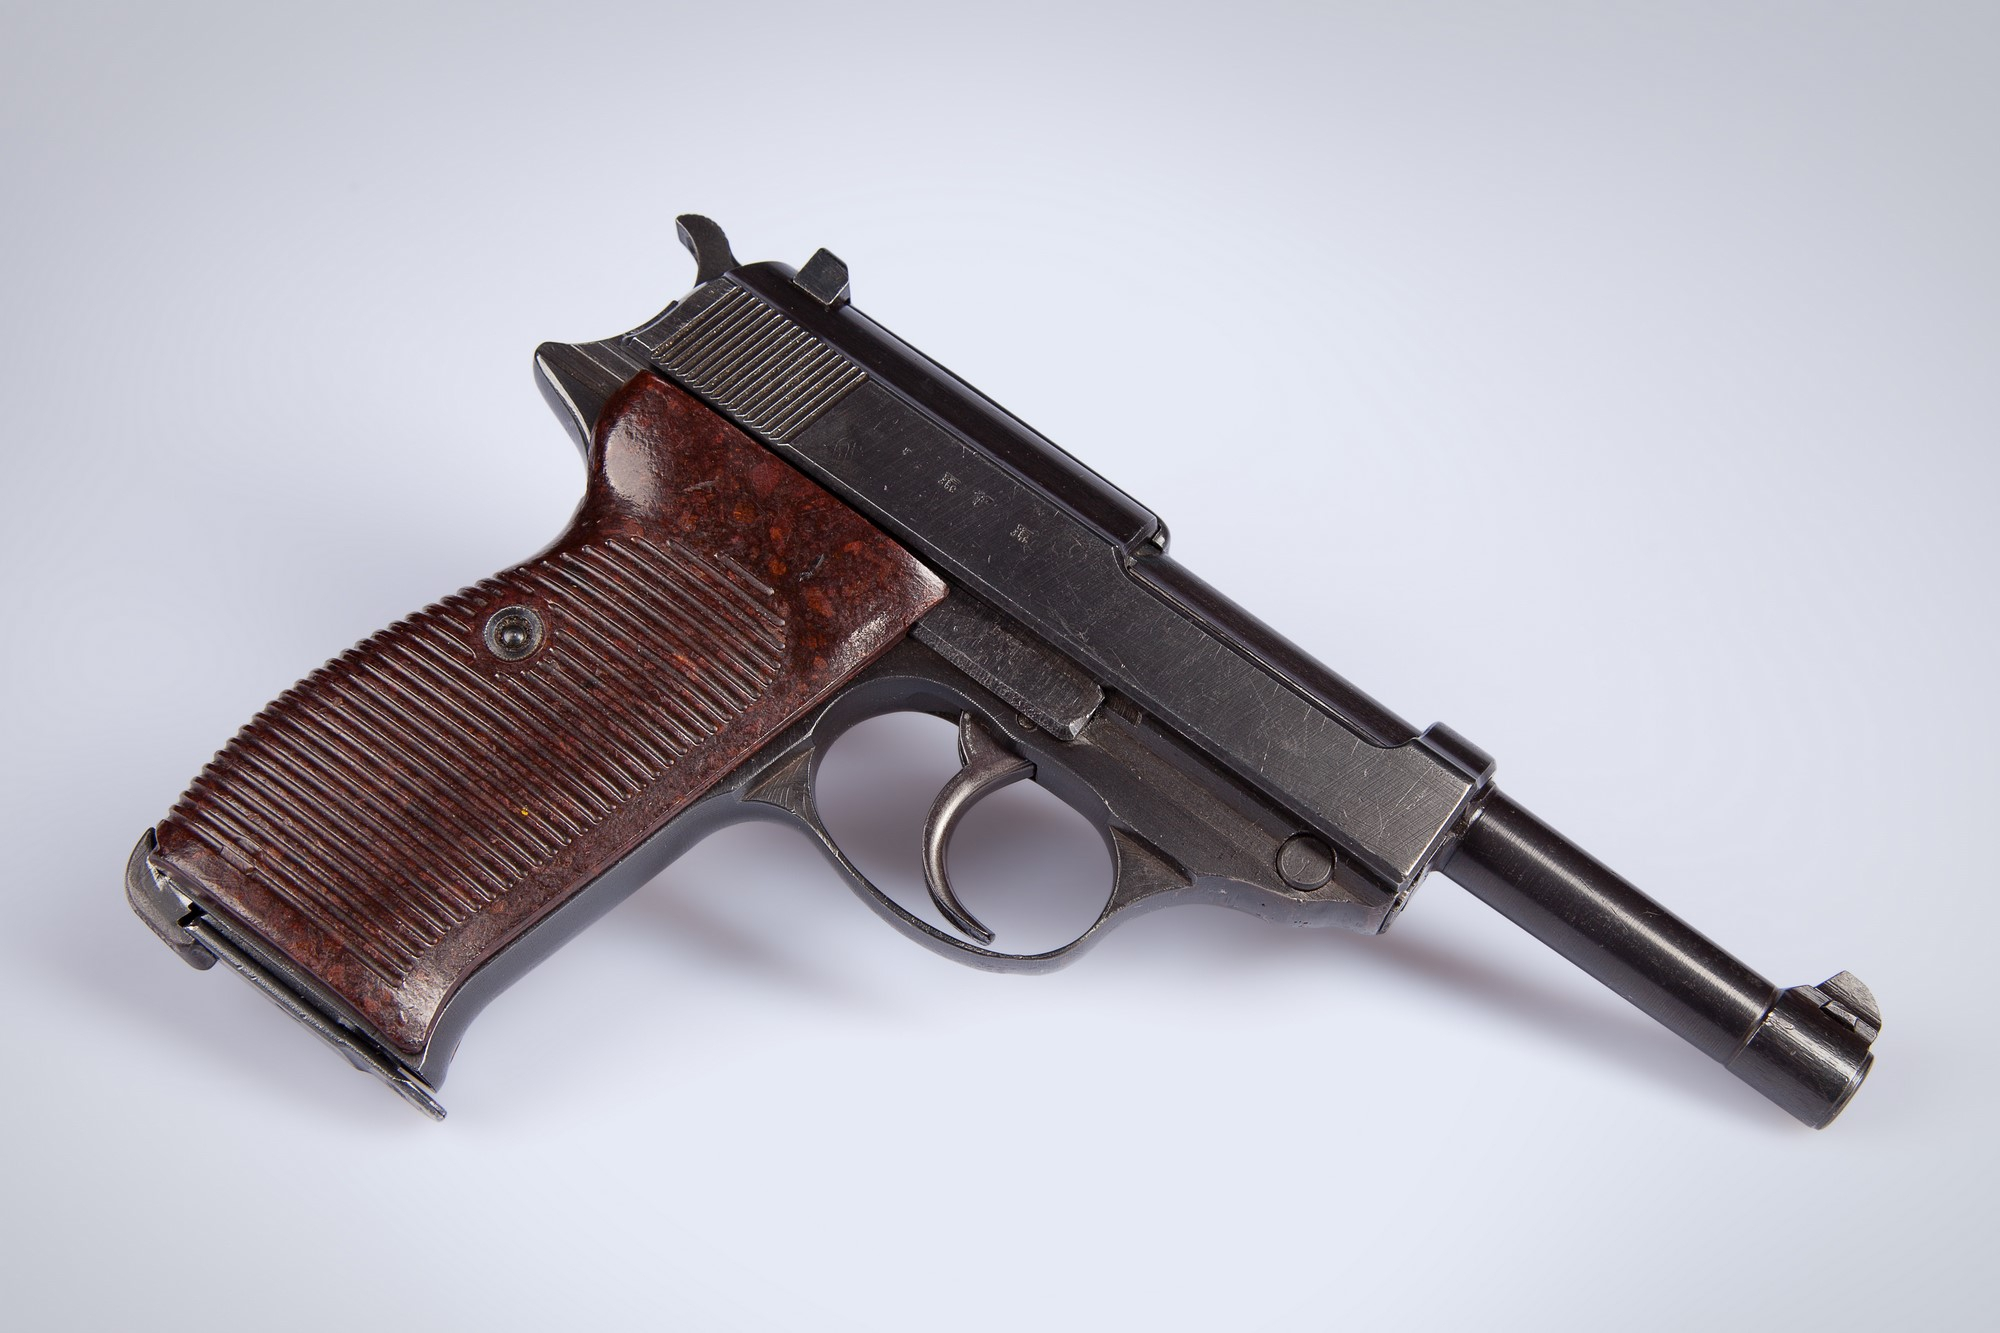 Walther P 38 Wallpaper